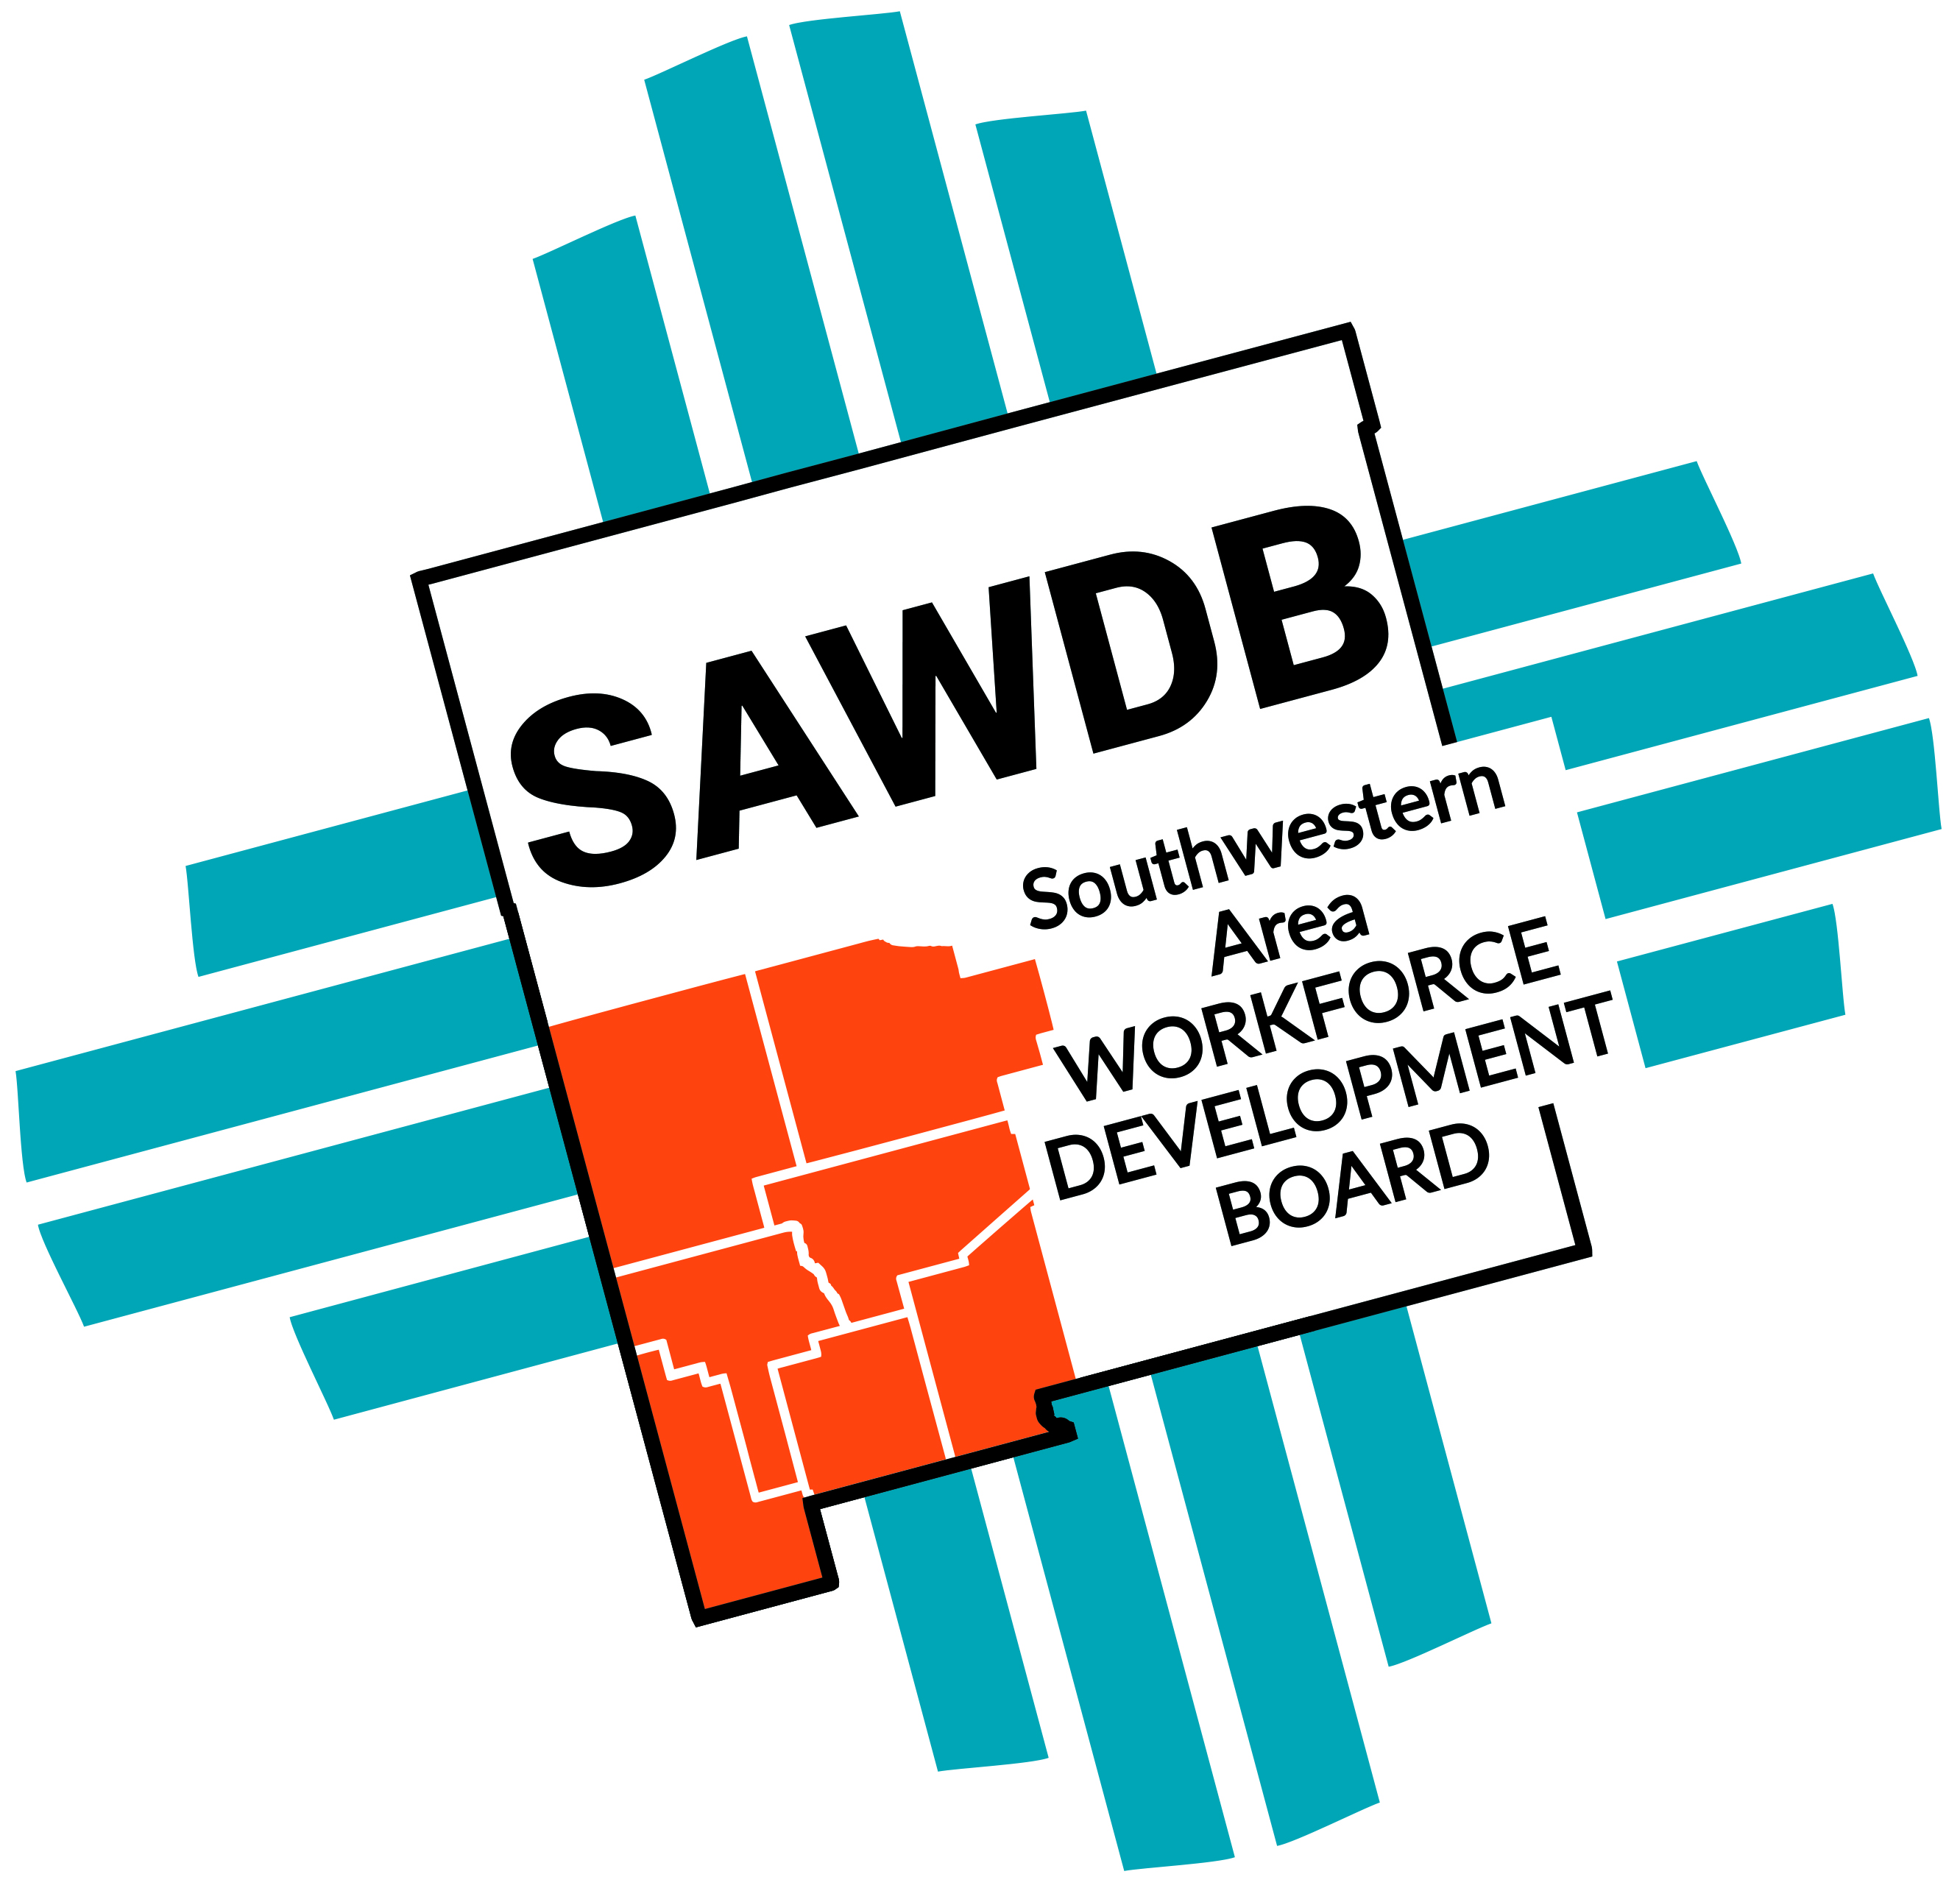 Organization logo of Southwestern Area Workforce Development Board